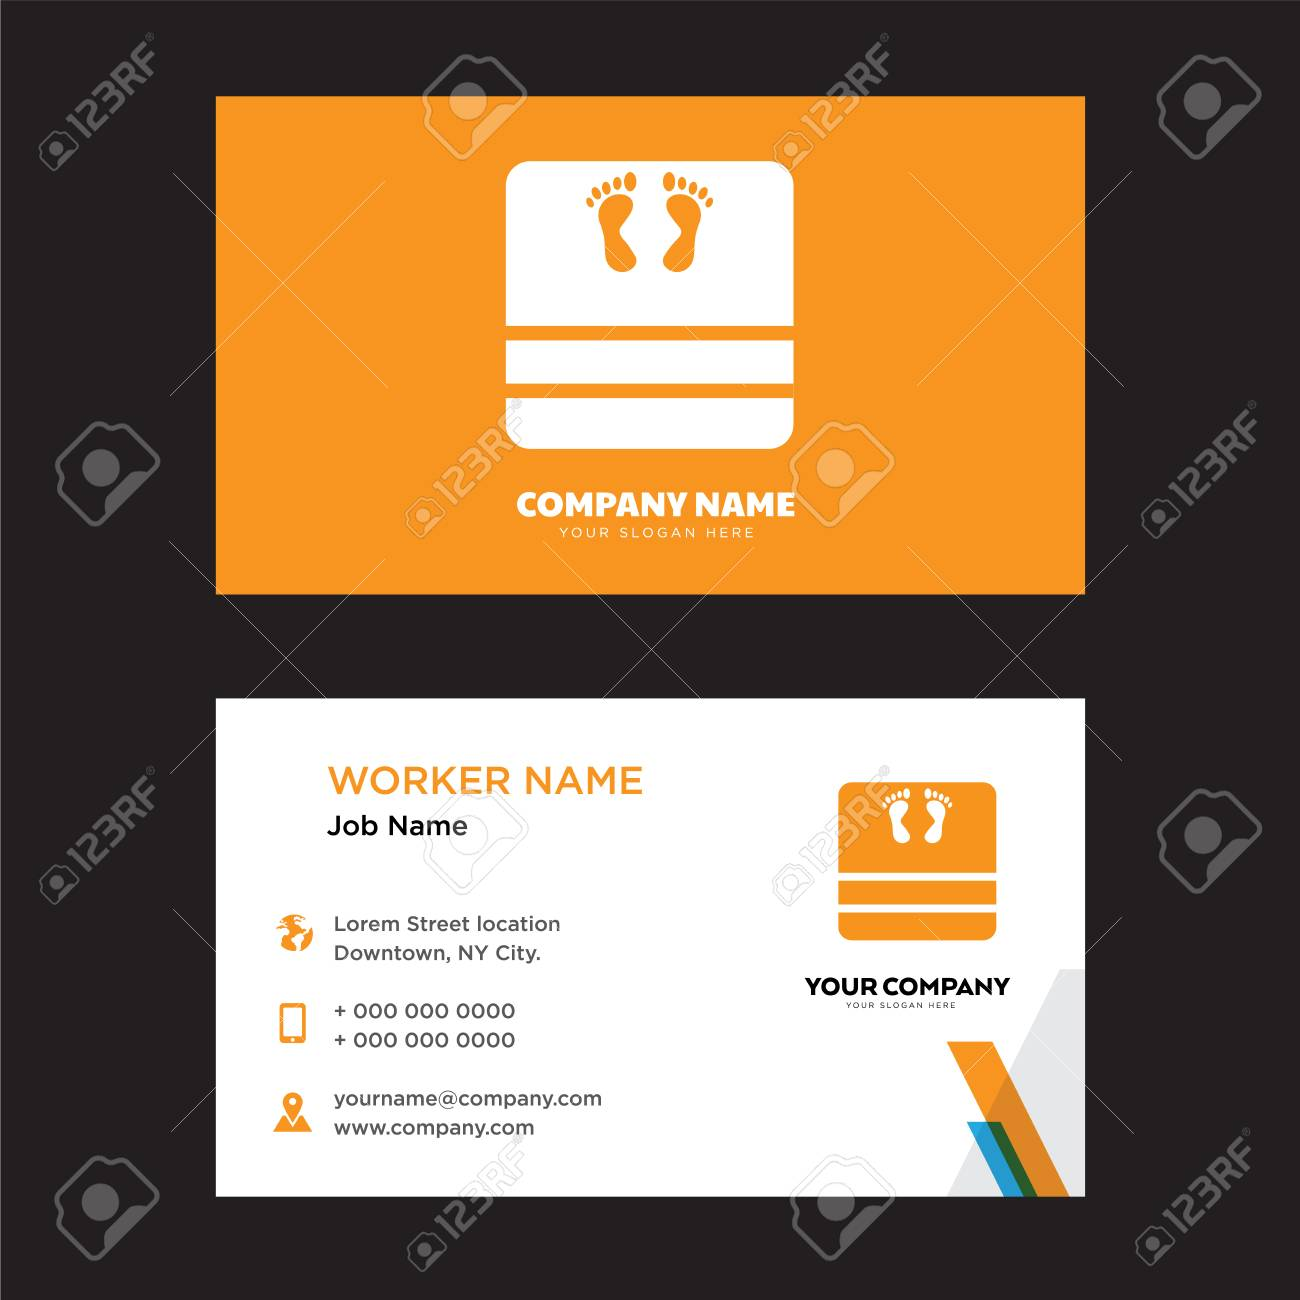 Medical business card design template visiting for your company medical business card design template visiting for your company modern creative and clean identity cheaphphosting Gallery